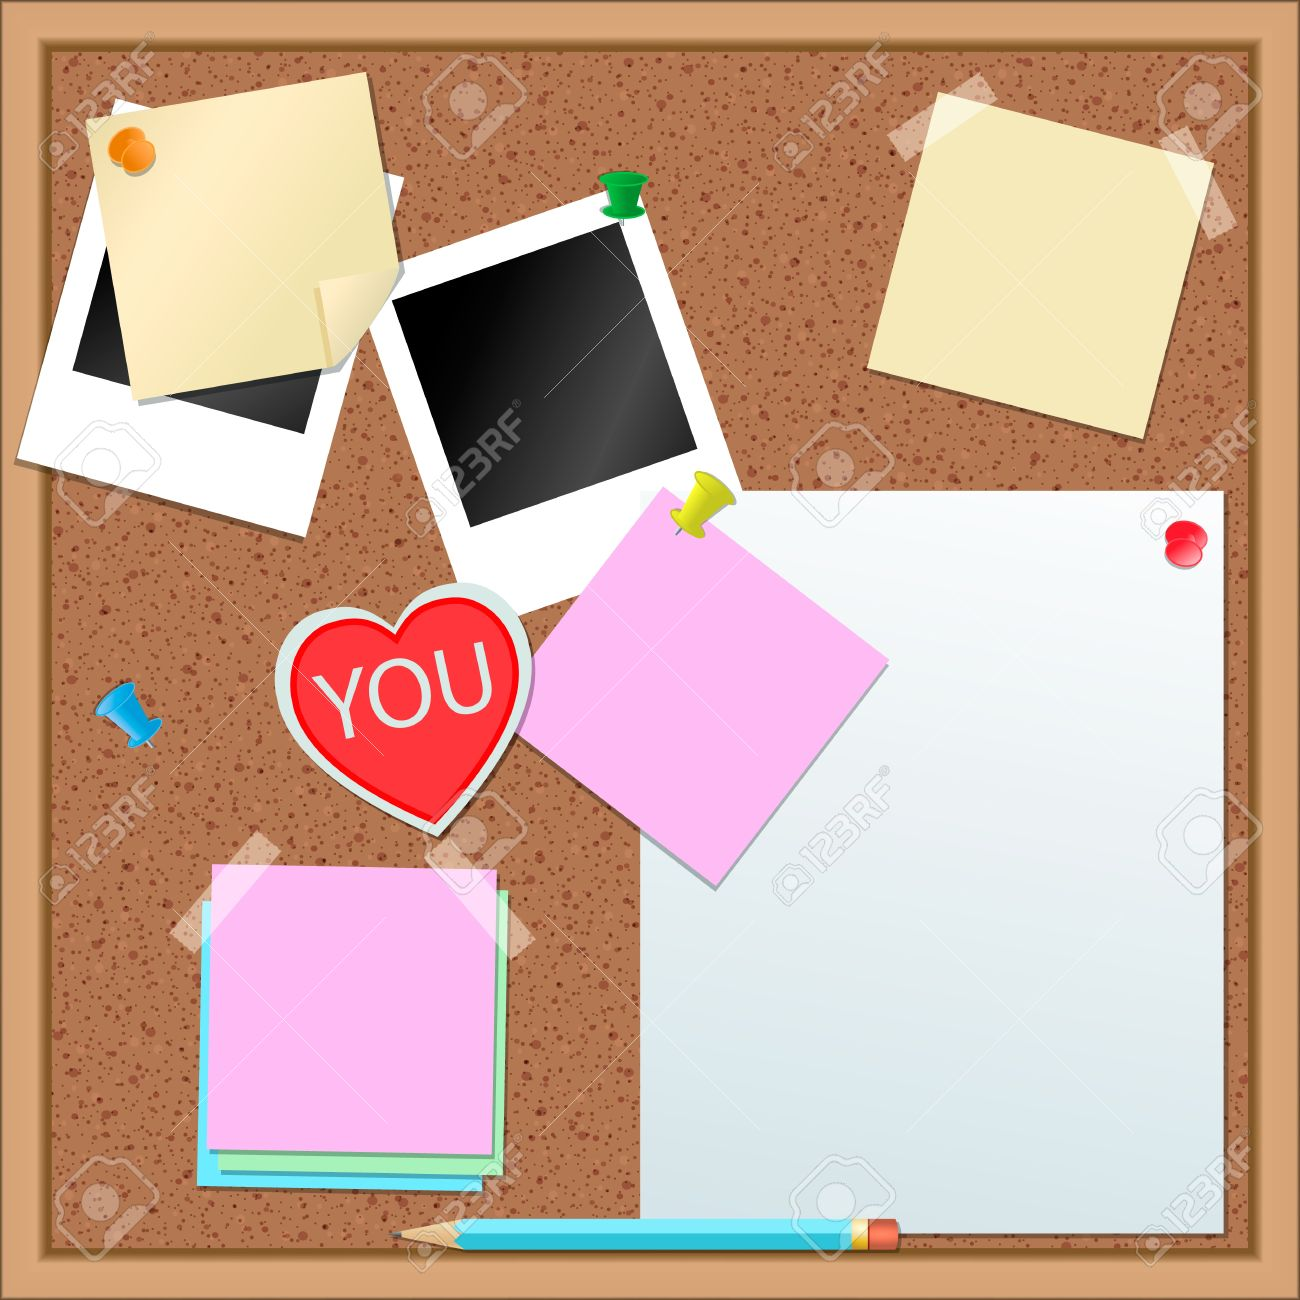 Paper stickers and other items on cork-board Stock Vector - 14223175